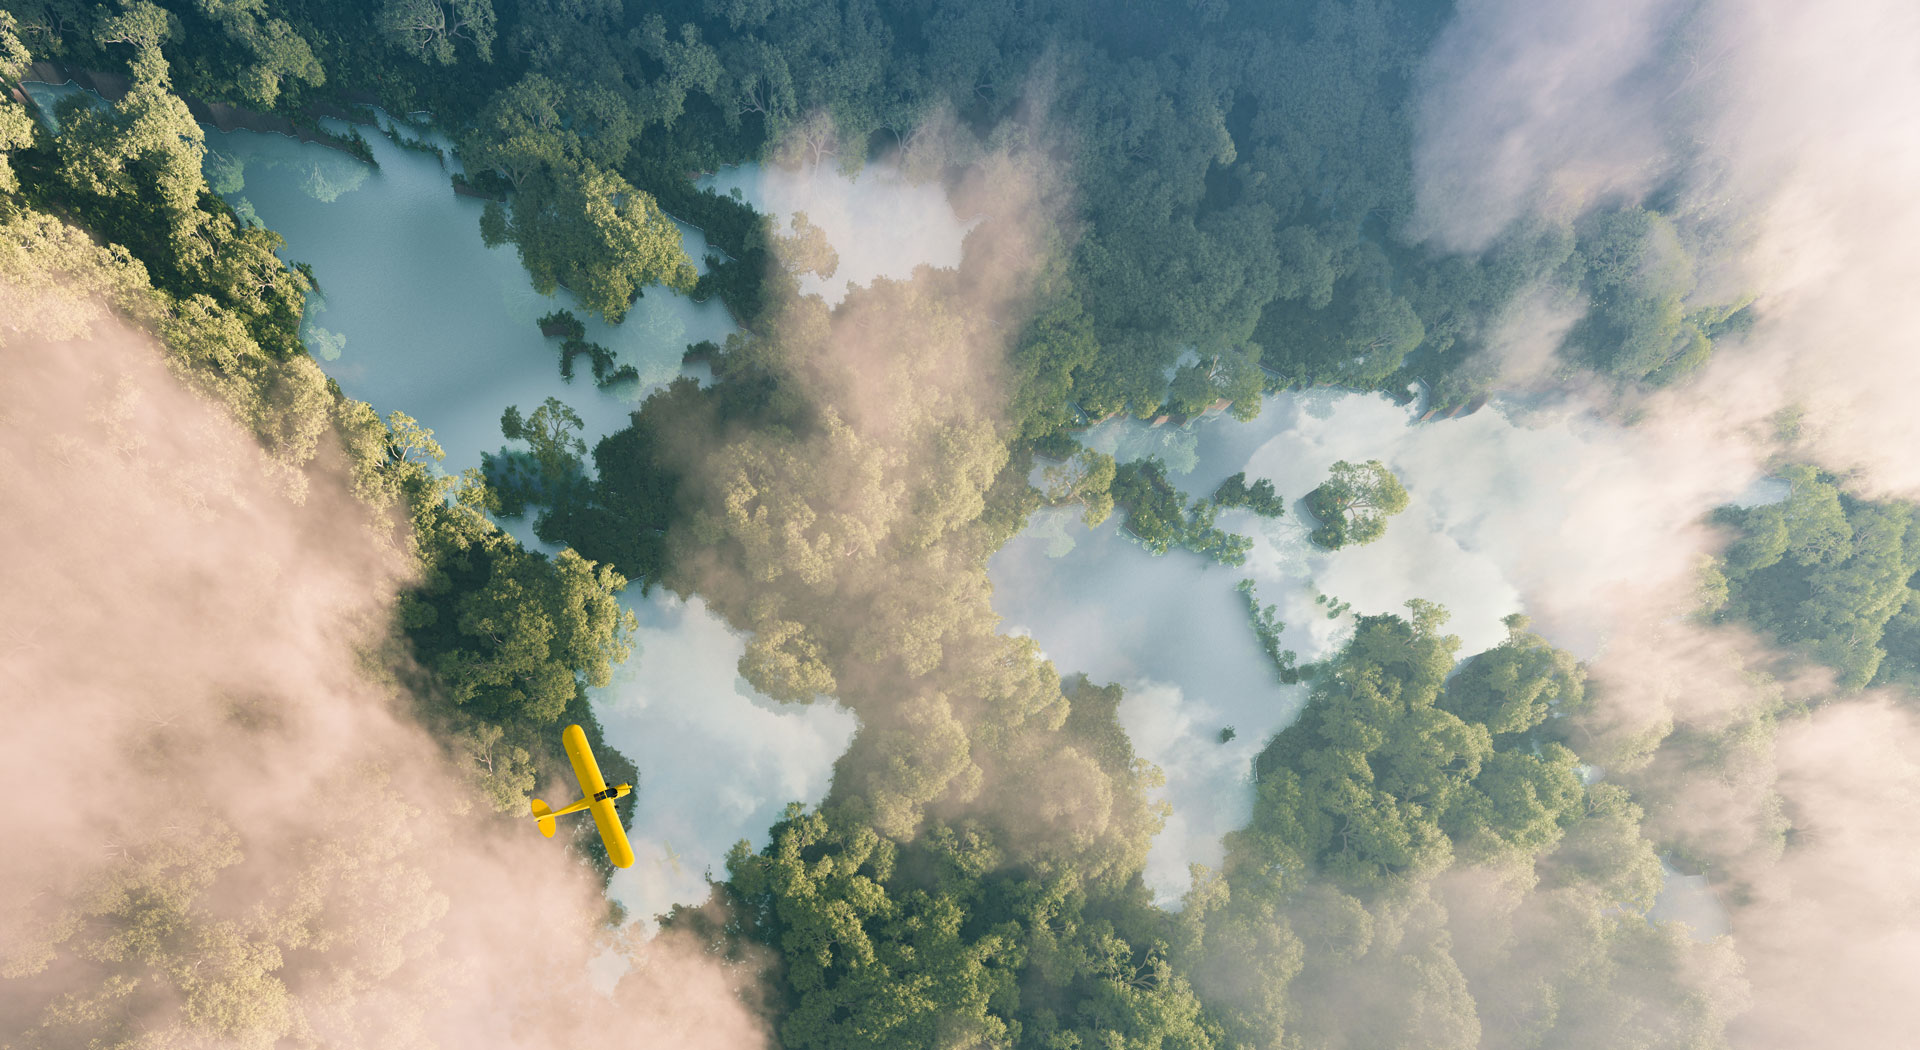 Aerial view of misty rainforest lakes in shape of world continents in dense jungle vegetation in beautiful late evening light.